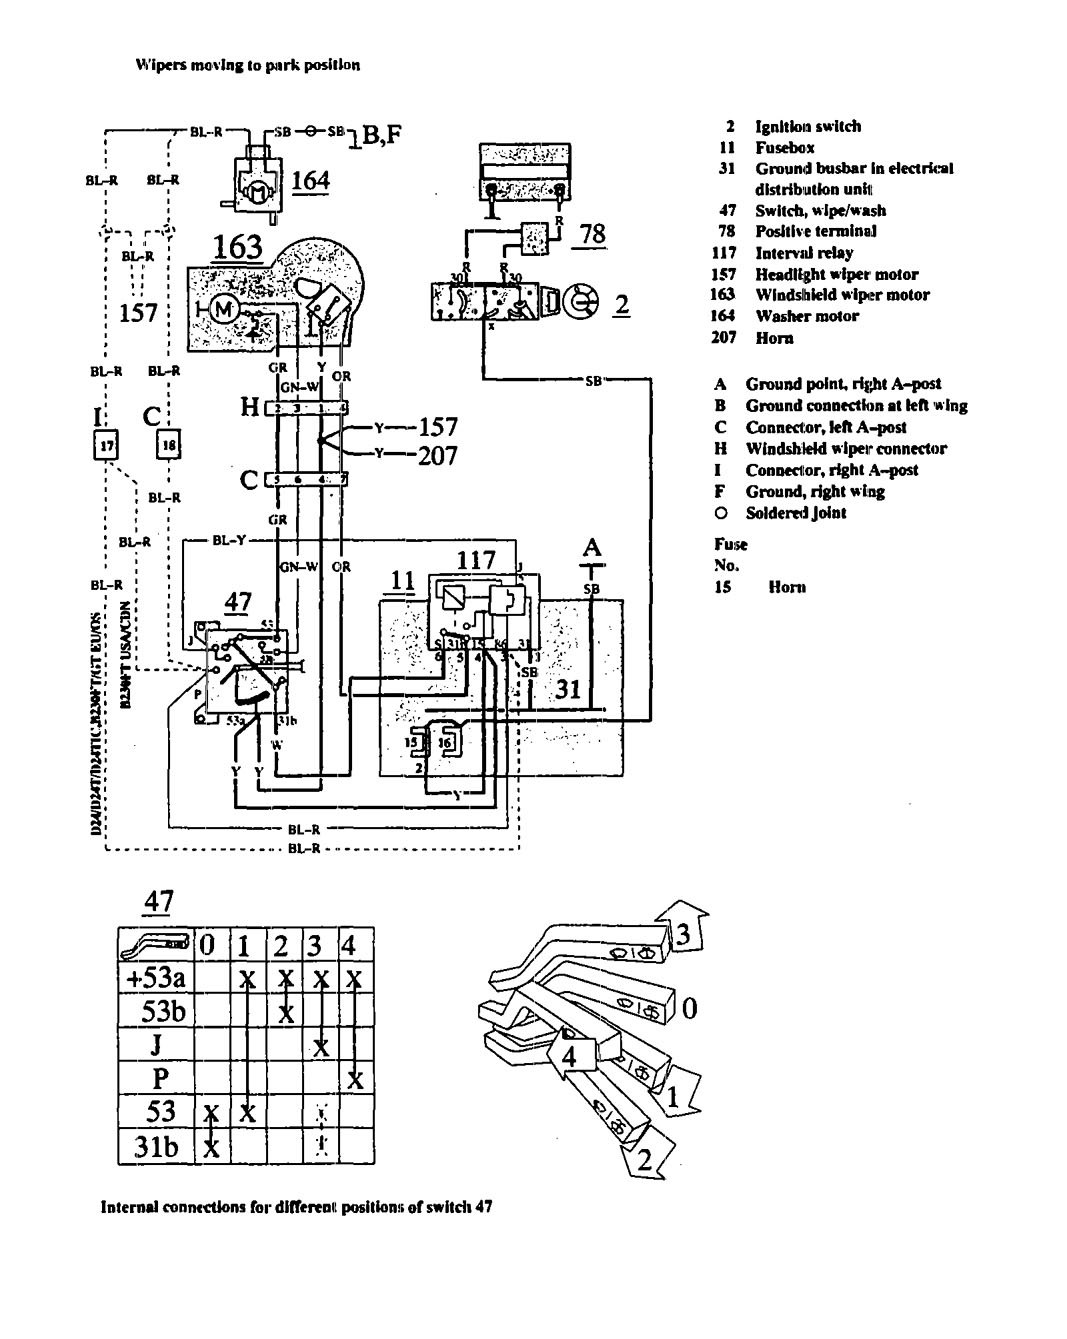 Volvo 940 Wiring Diagram 1991 - wiring diagrams schematics